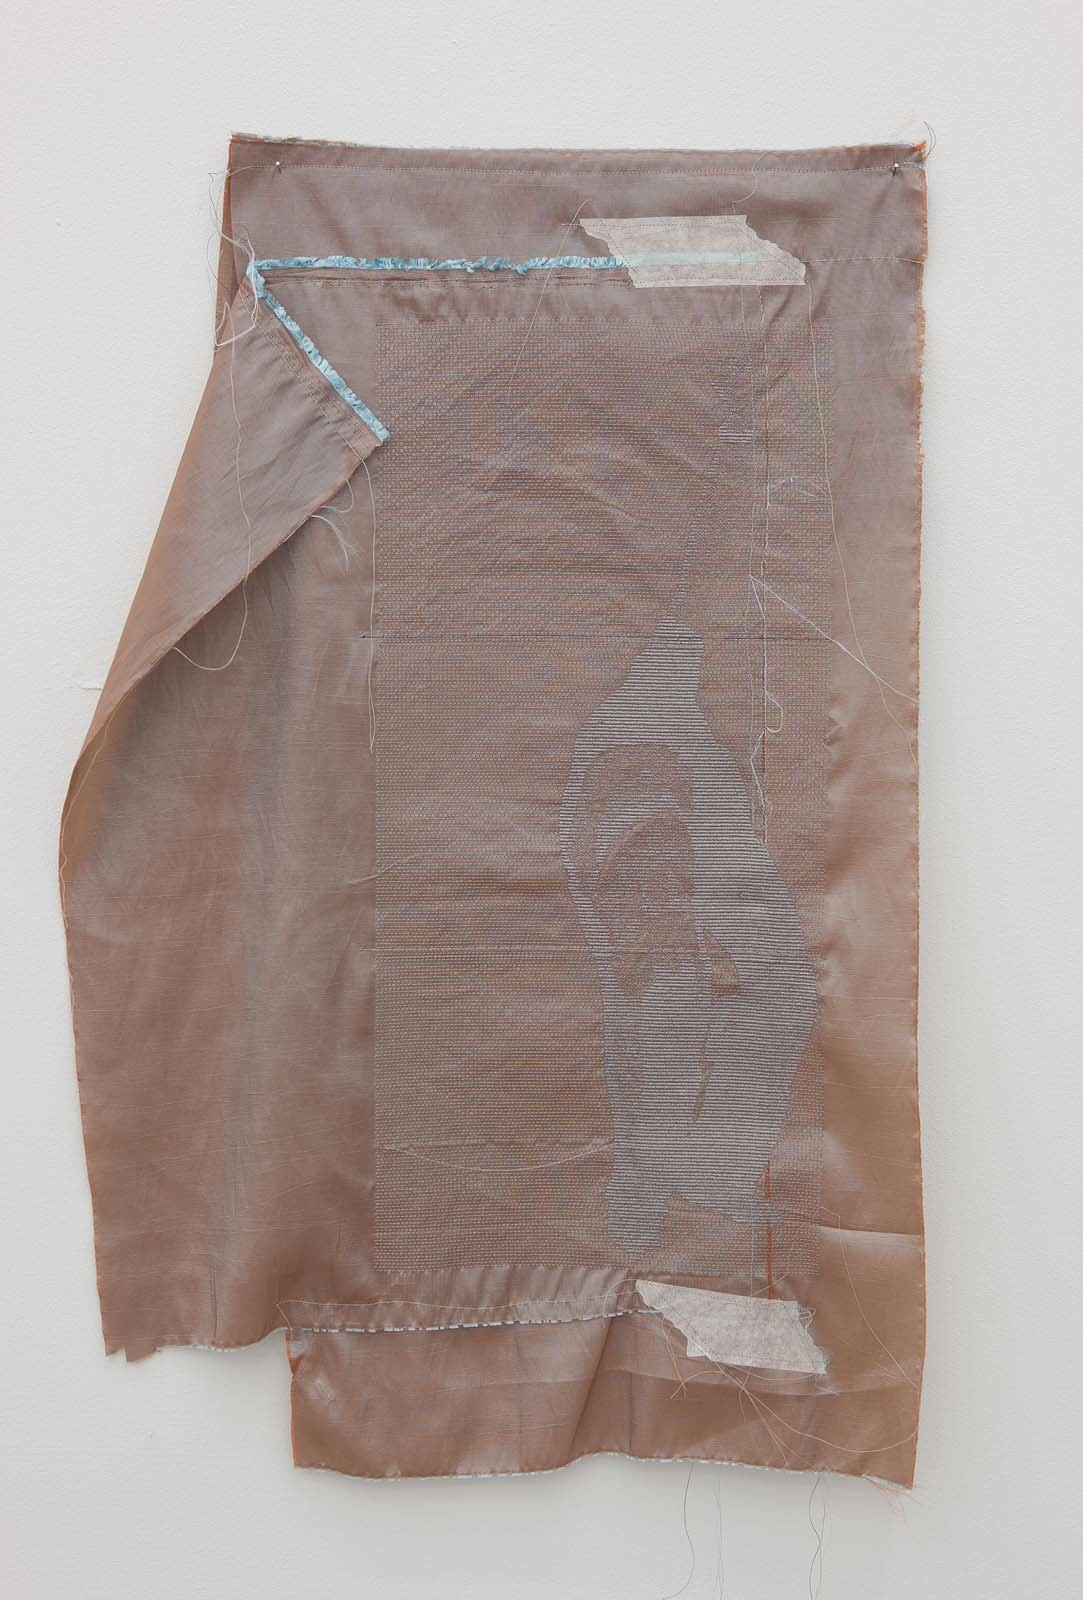 Alef, blind, 2010, embroidery on various textiles